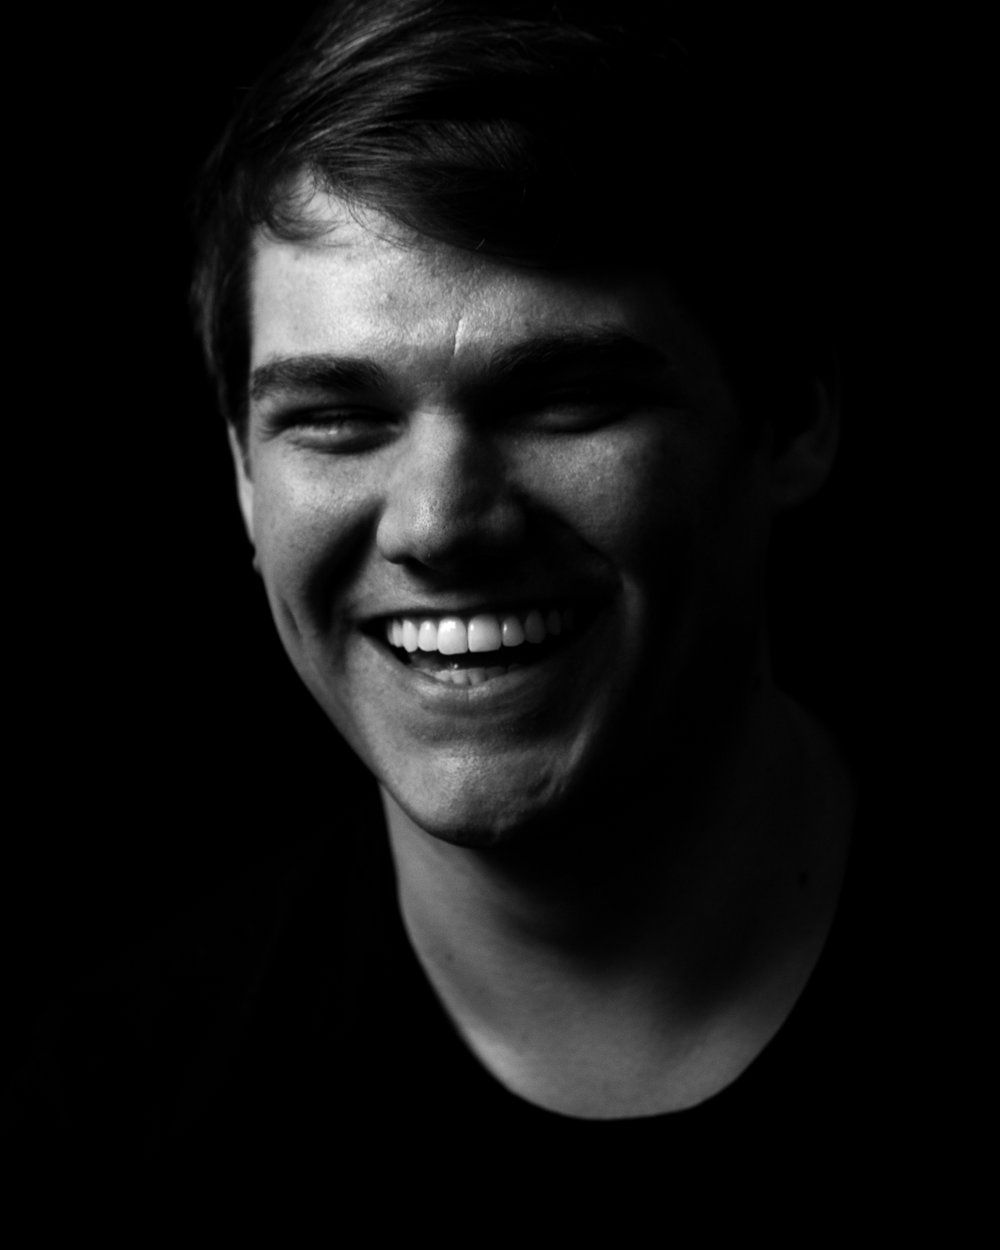 High contrast black and white male portrait laughter emotion